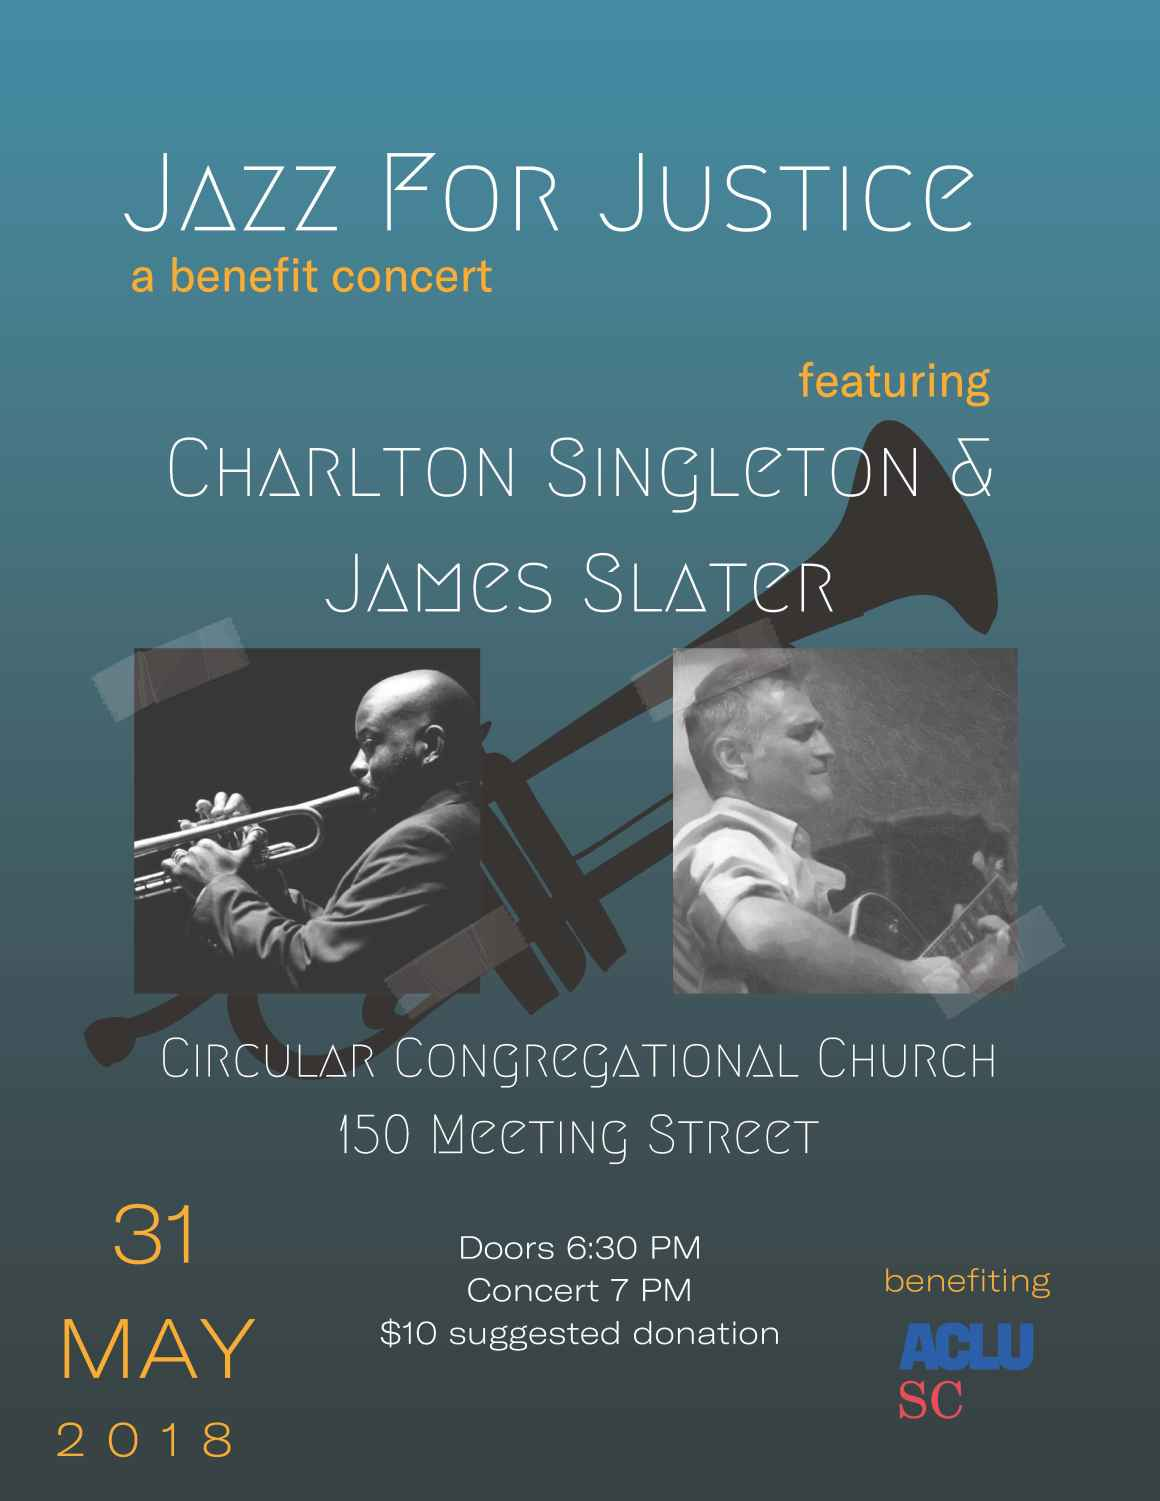 Jazz for Justice Benefit Concert for ACLU